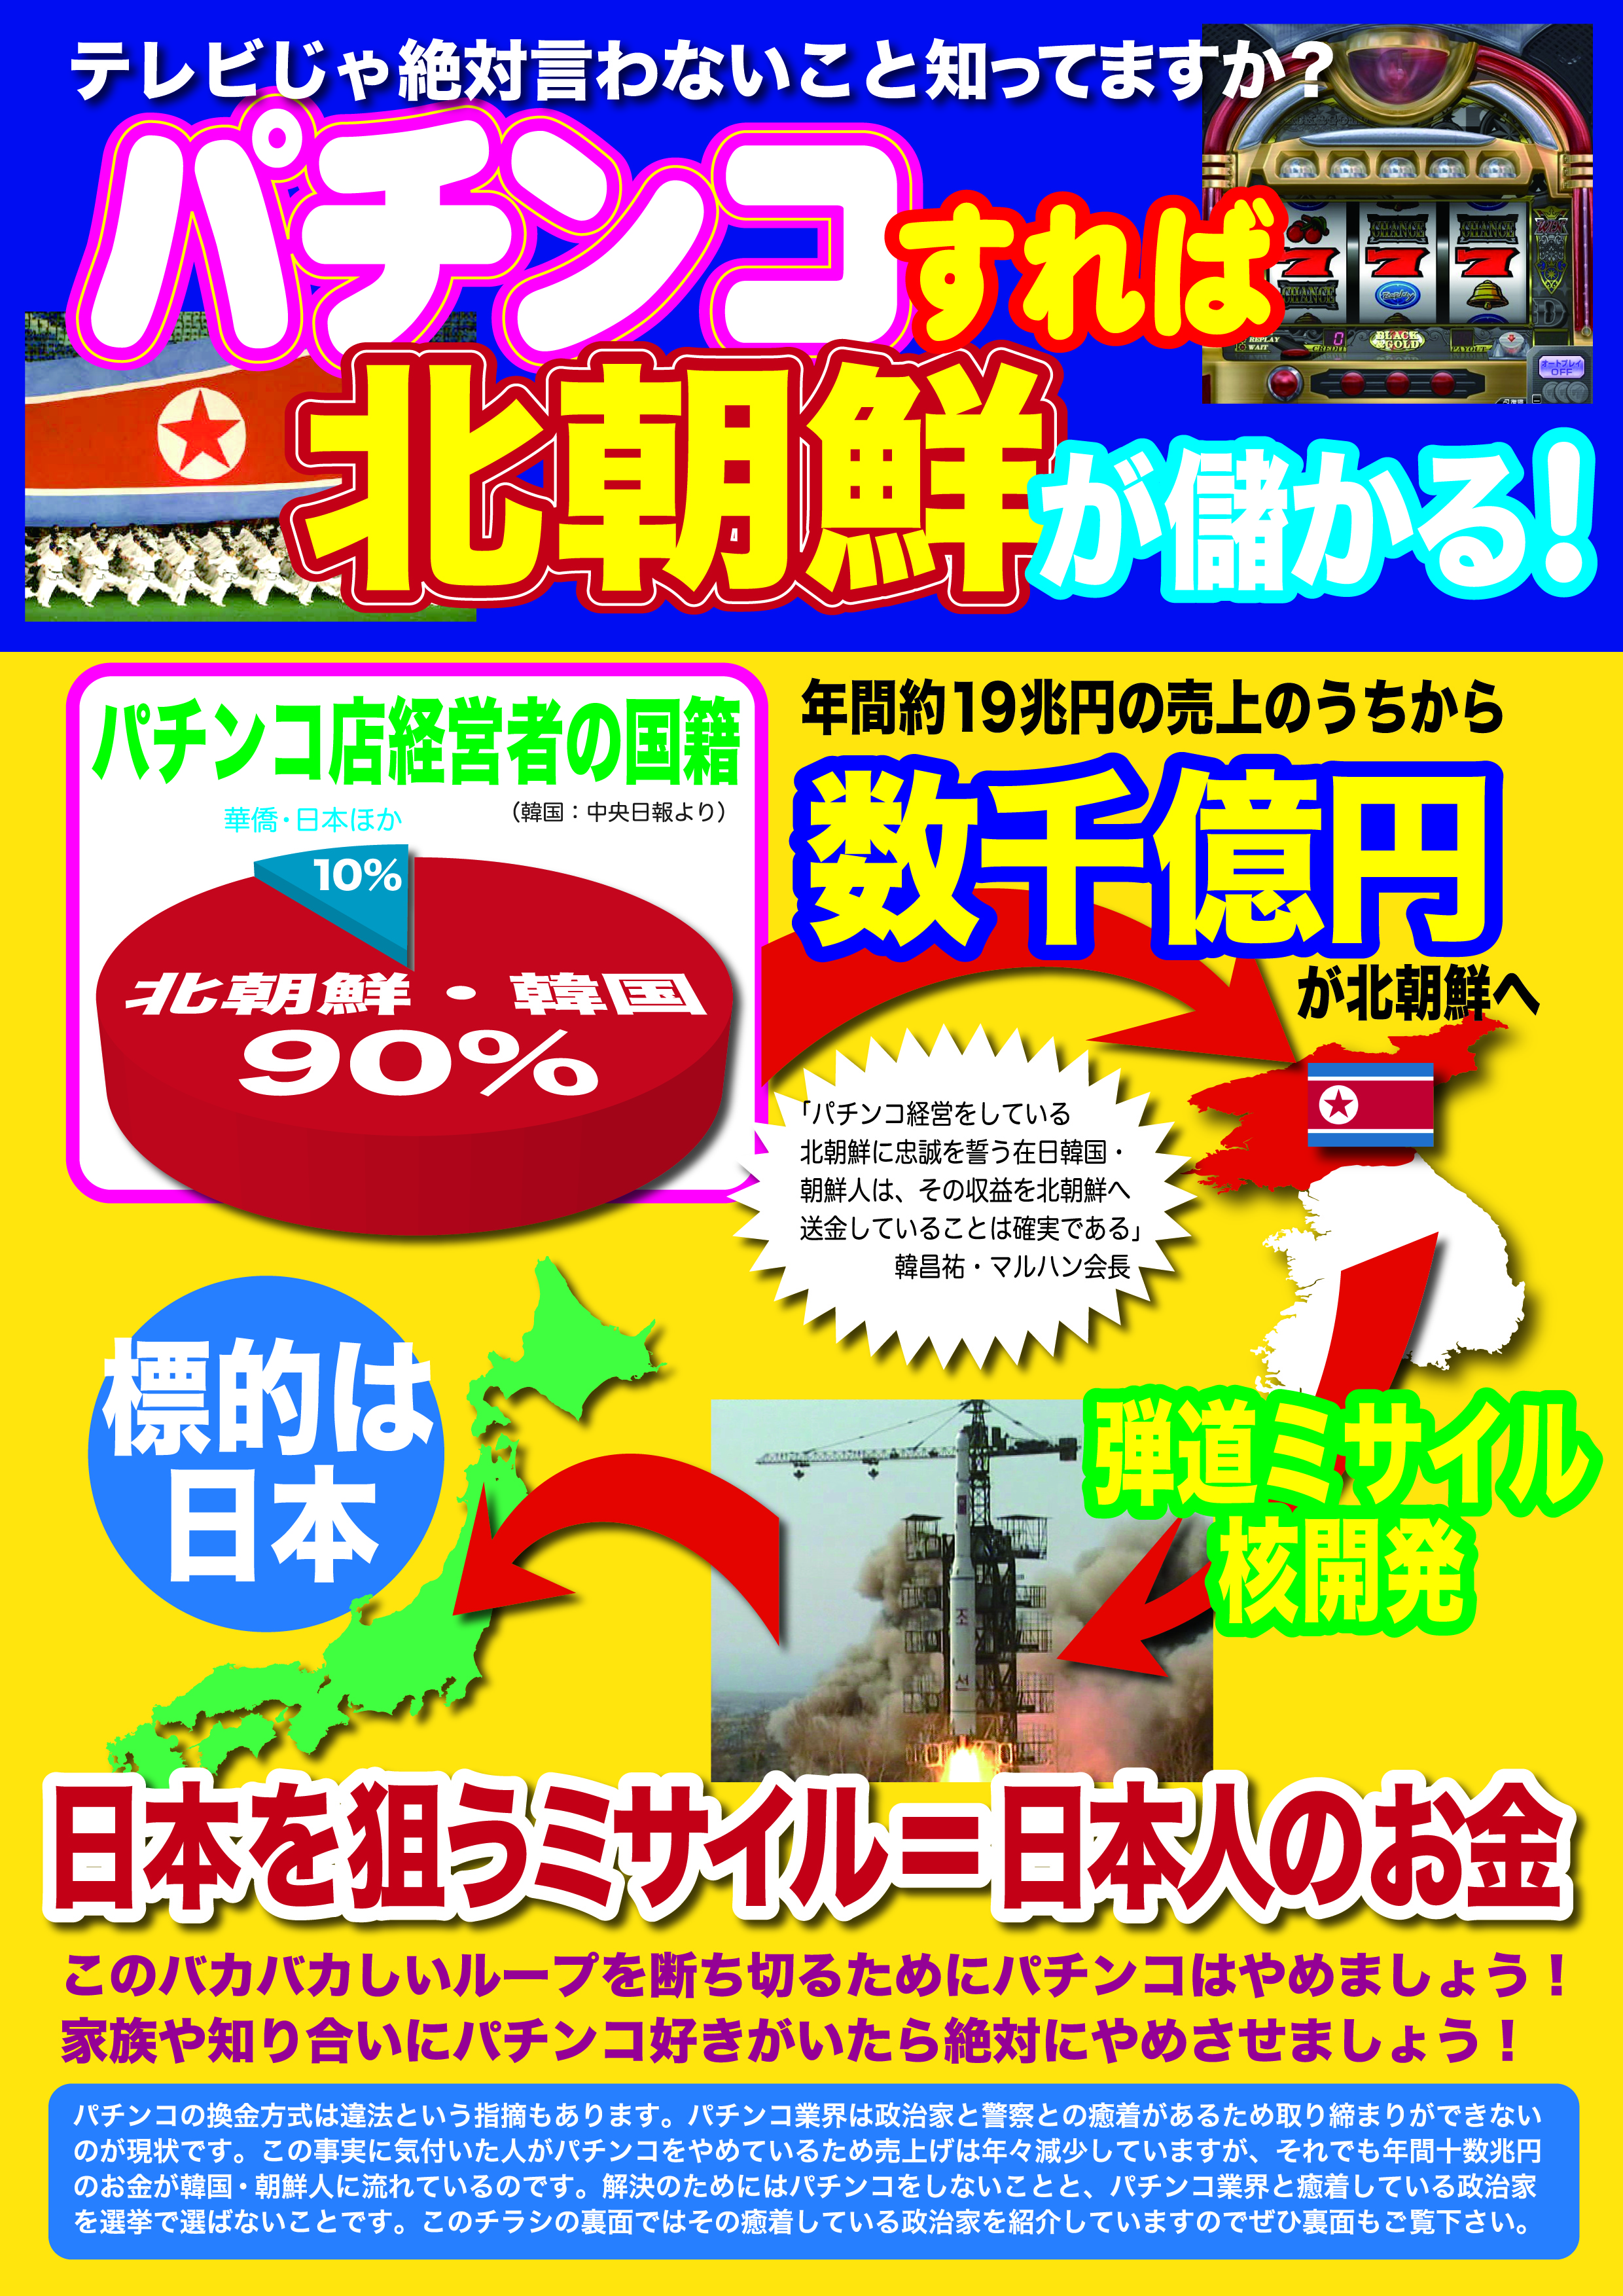 http://www.pachinko-abolition.net/pdfs/201305flyer1_head.jpg